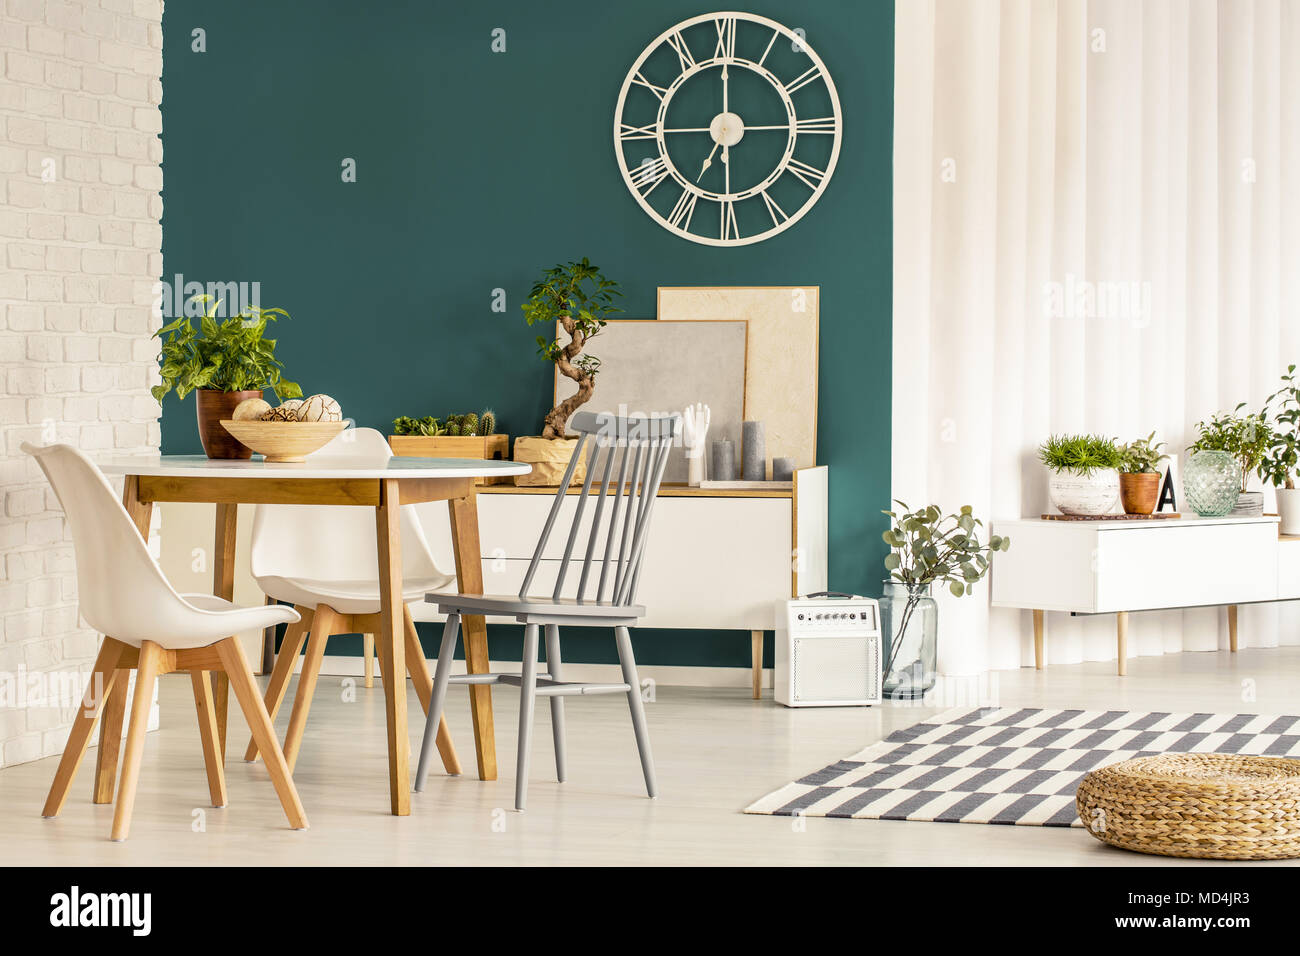 Bright spacious dining room interior with white and gray chairs at a round table and wooden cupboard against green wall & Bright spacious dining room interior with white and gray chairs at ...